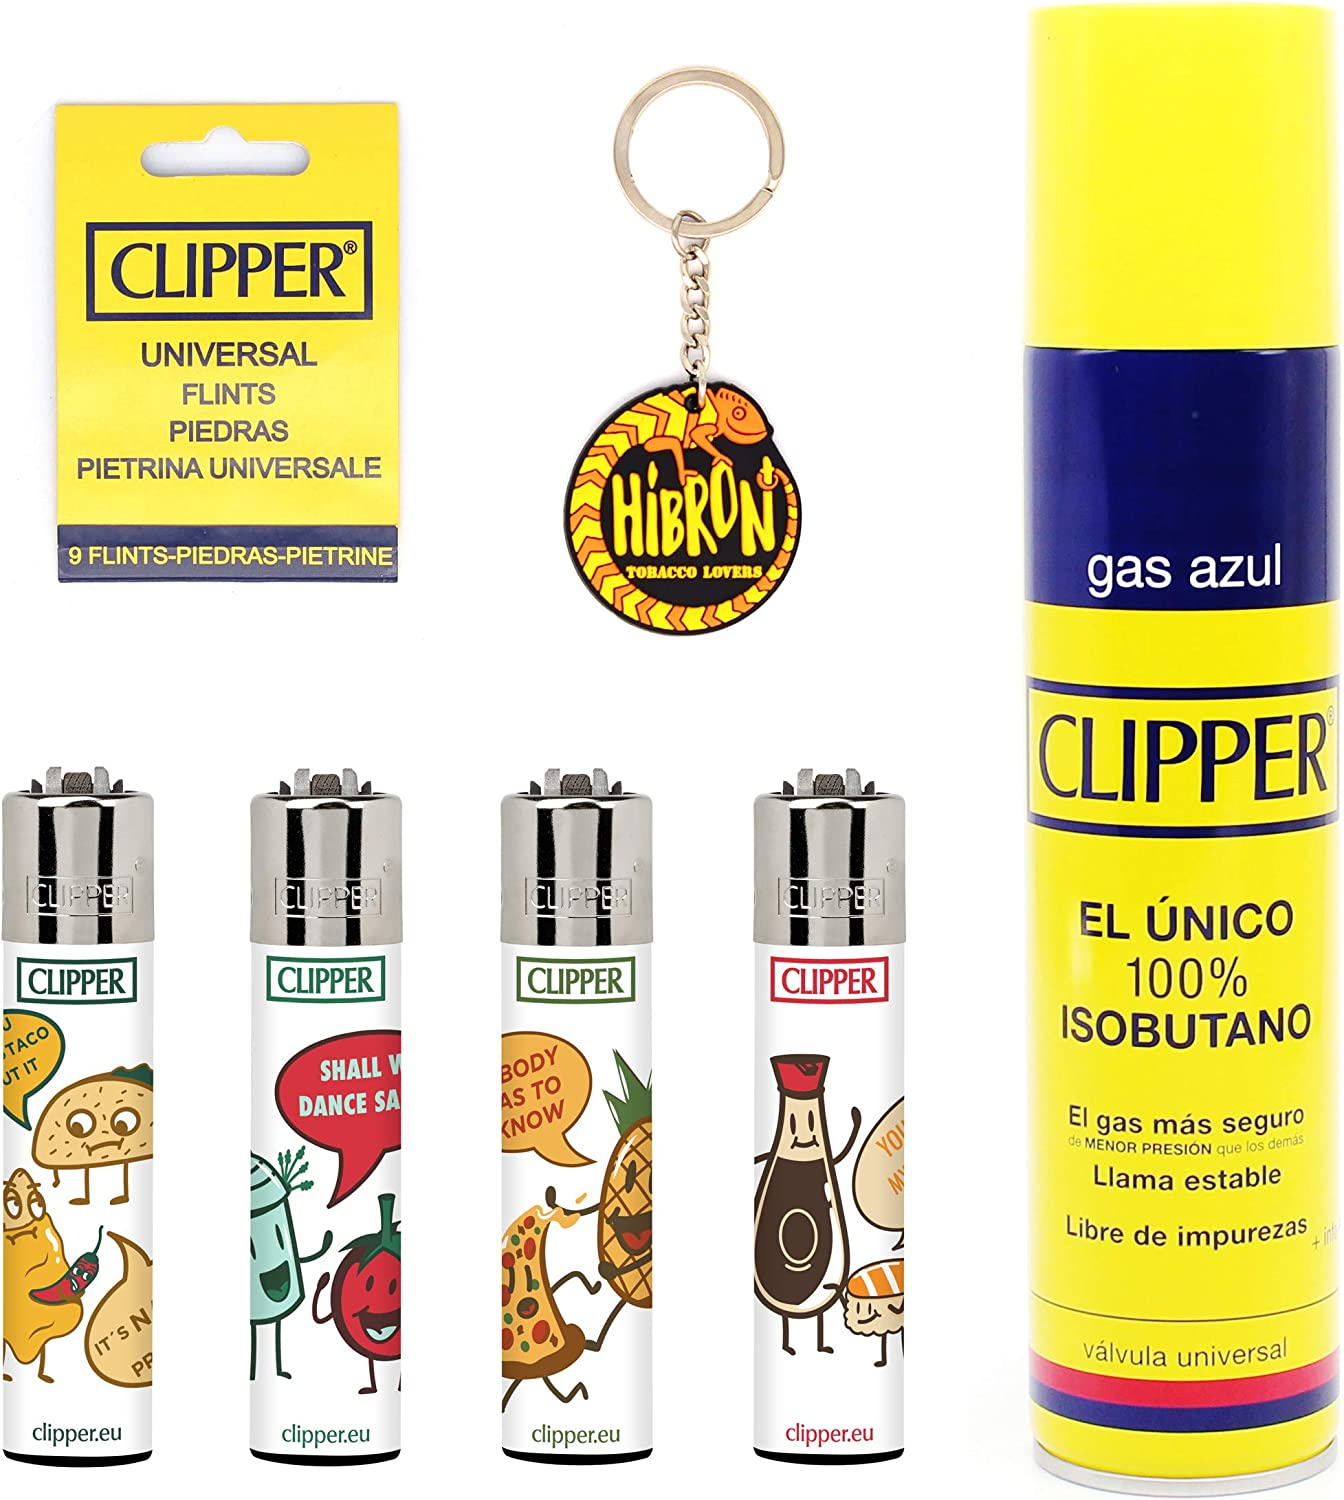 HIBRON Clipper 4 Mecheros Encendedores Diversos Surtidos Bonitos, 1 Carga Gas Encendedor Clipper 300 Ml,9uds De Piedra Clipper Y 1 Llavero Gratis 1-10003-11: Amazon ...